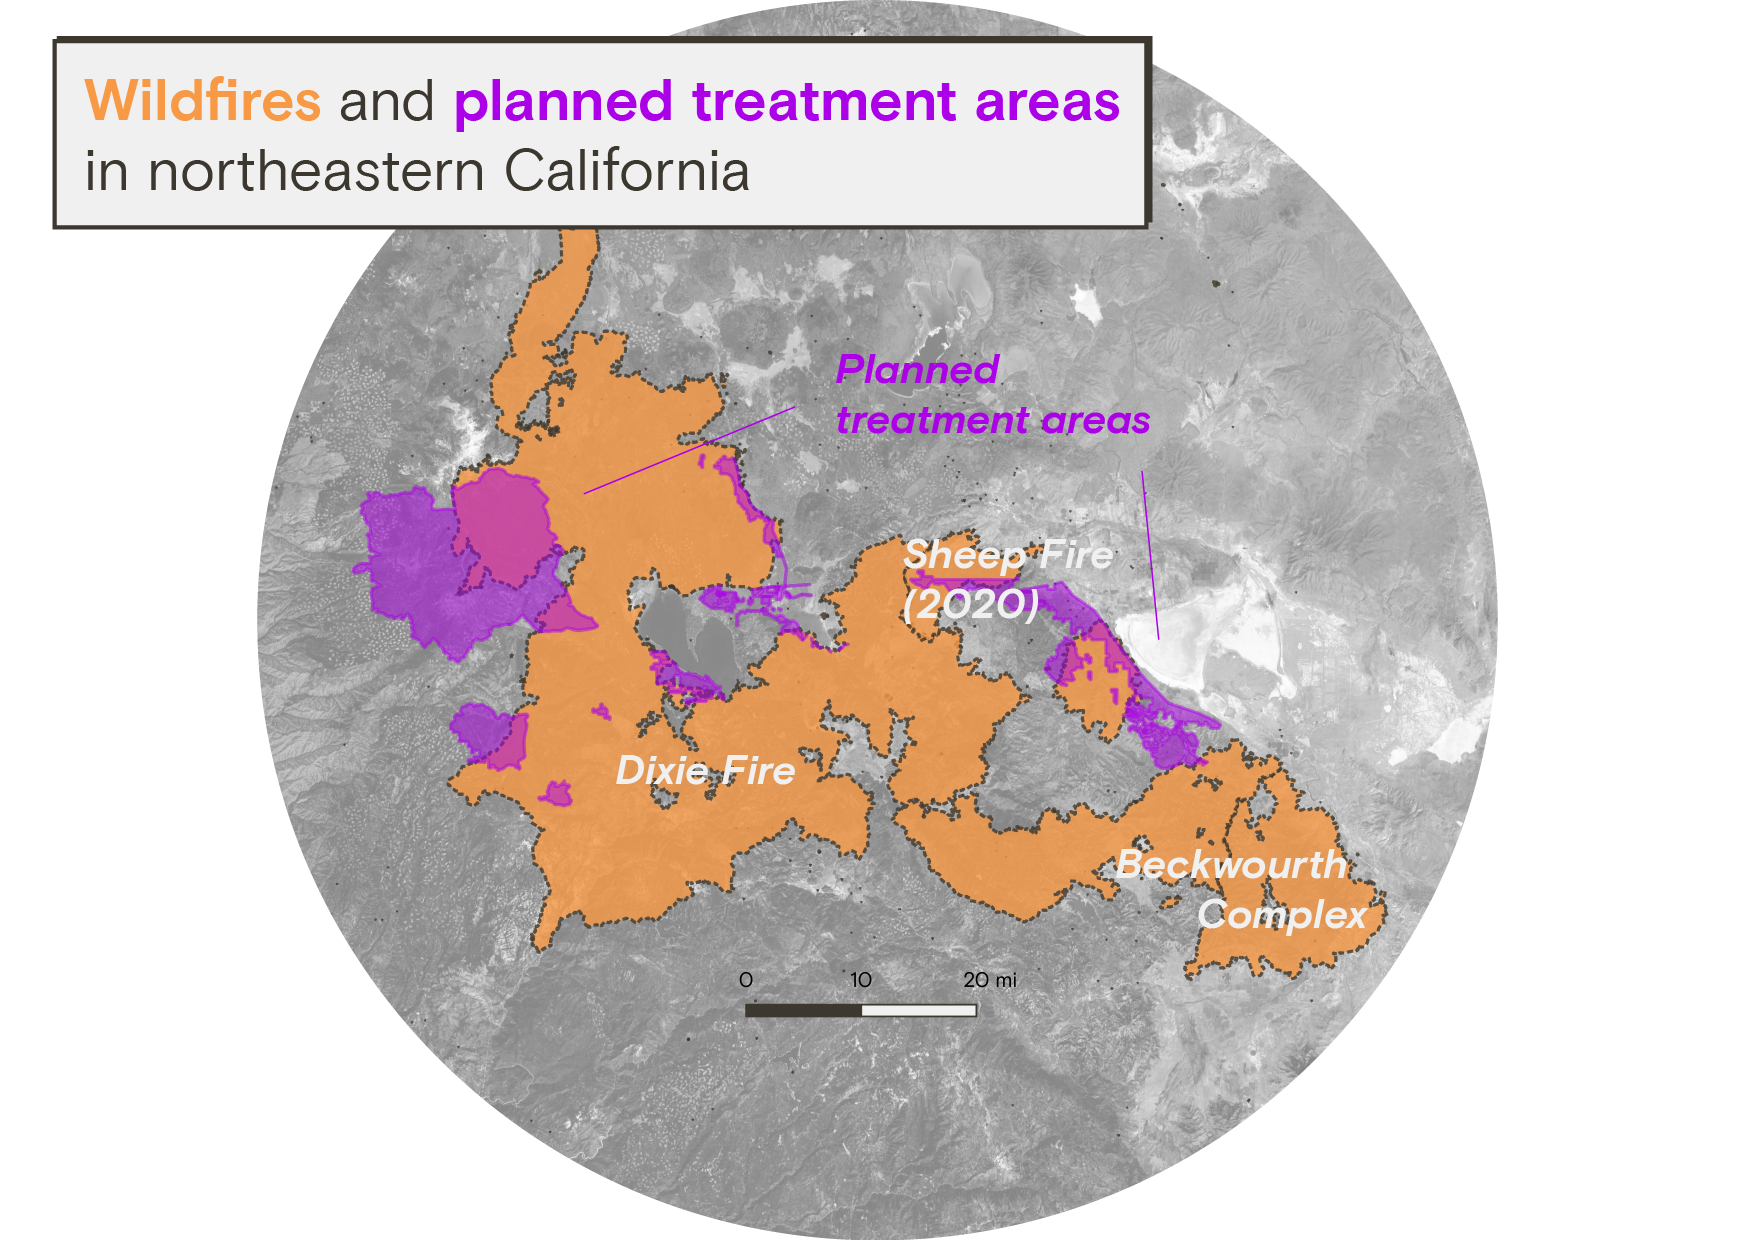 A map showing wildfires and planned treatment areas in northeastern California. The Dixie Fire, Sheep Fire, and Beckwourth Complex have infringed on many planned treatment areas before the projects could begin.